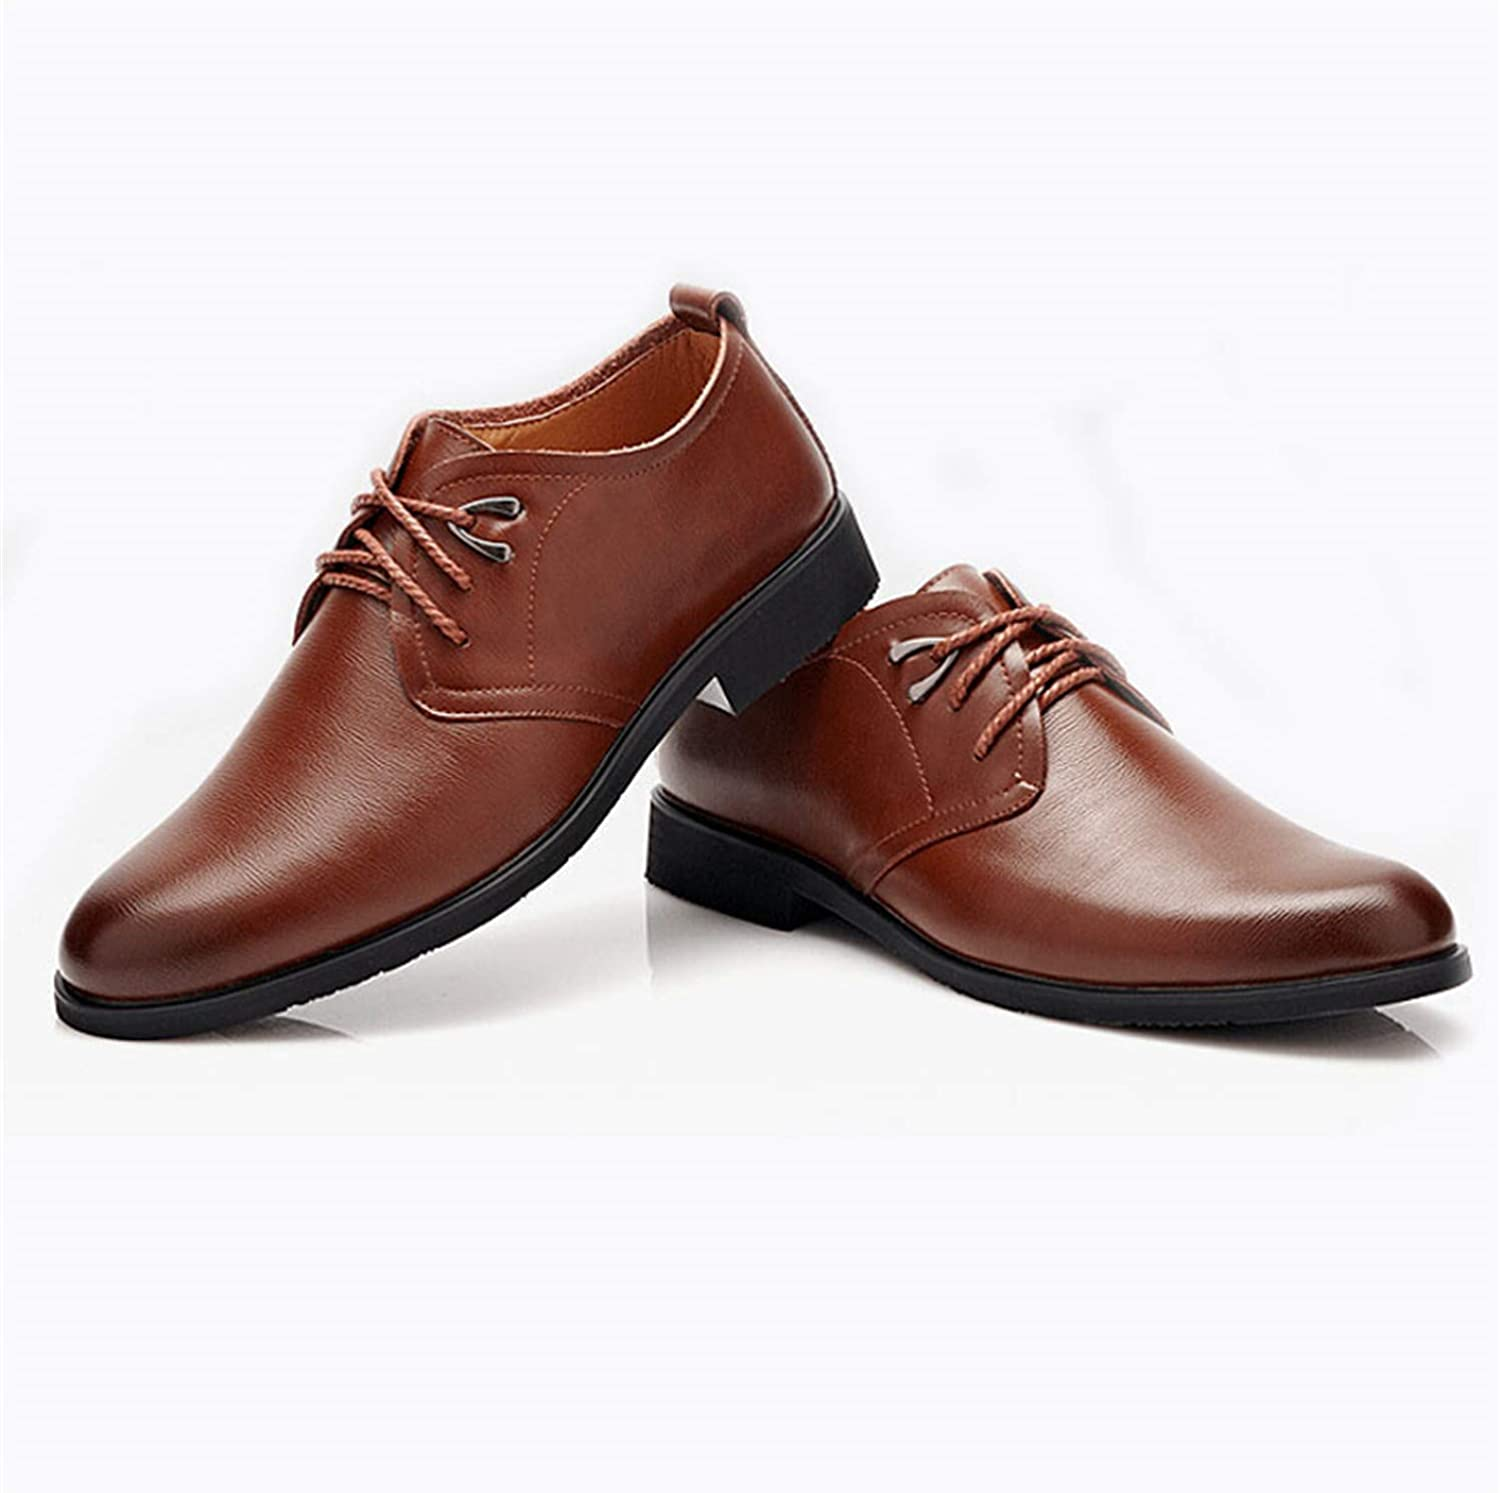 Sonjer Men shoes Fashion Man-Made Leather Dress shoes Round Toe Men Wedding shoes Men Casual Business Flats Size 3844